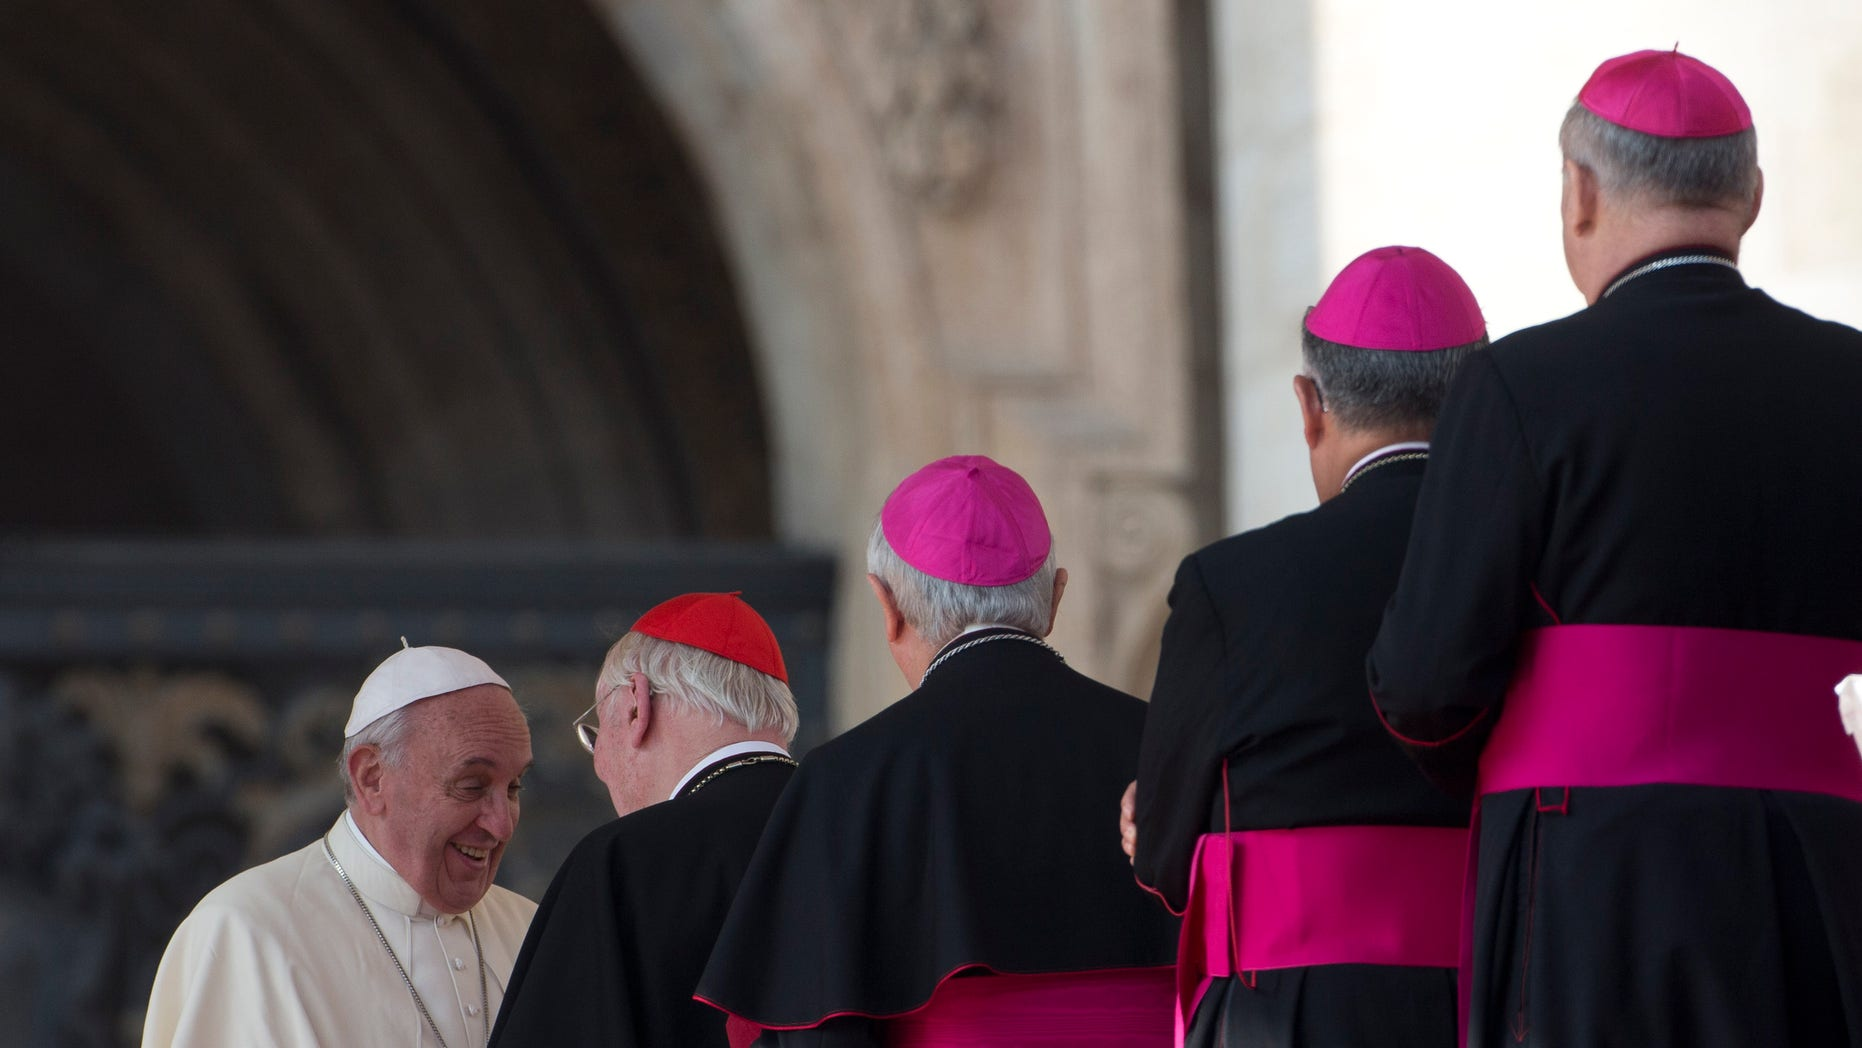 Cardinals and Bishops line up to greet Pope Francis at the end of his weekly general audience in St. Peter's Square at the Vatican, Wednesday, Oct. 30, 2013.(AP Photo/Alessandra Tarantino)